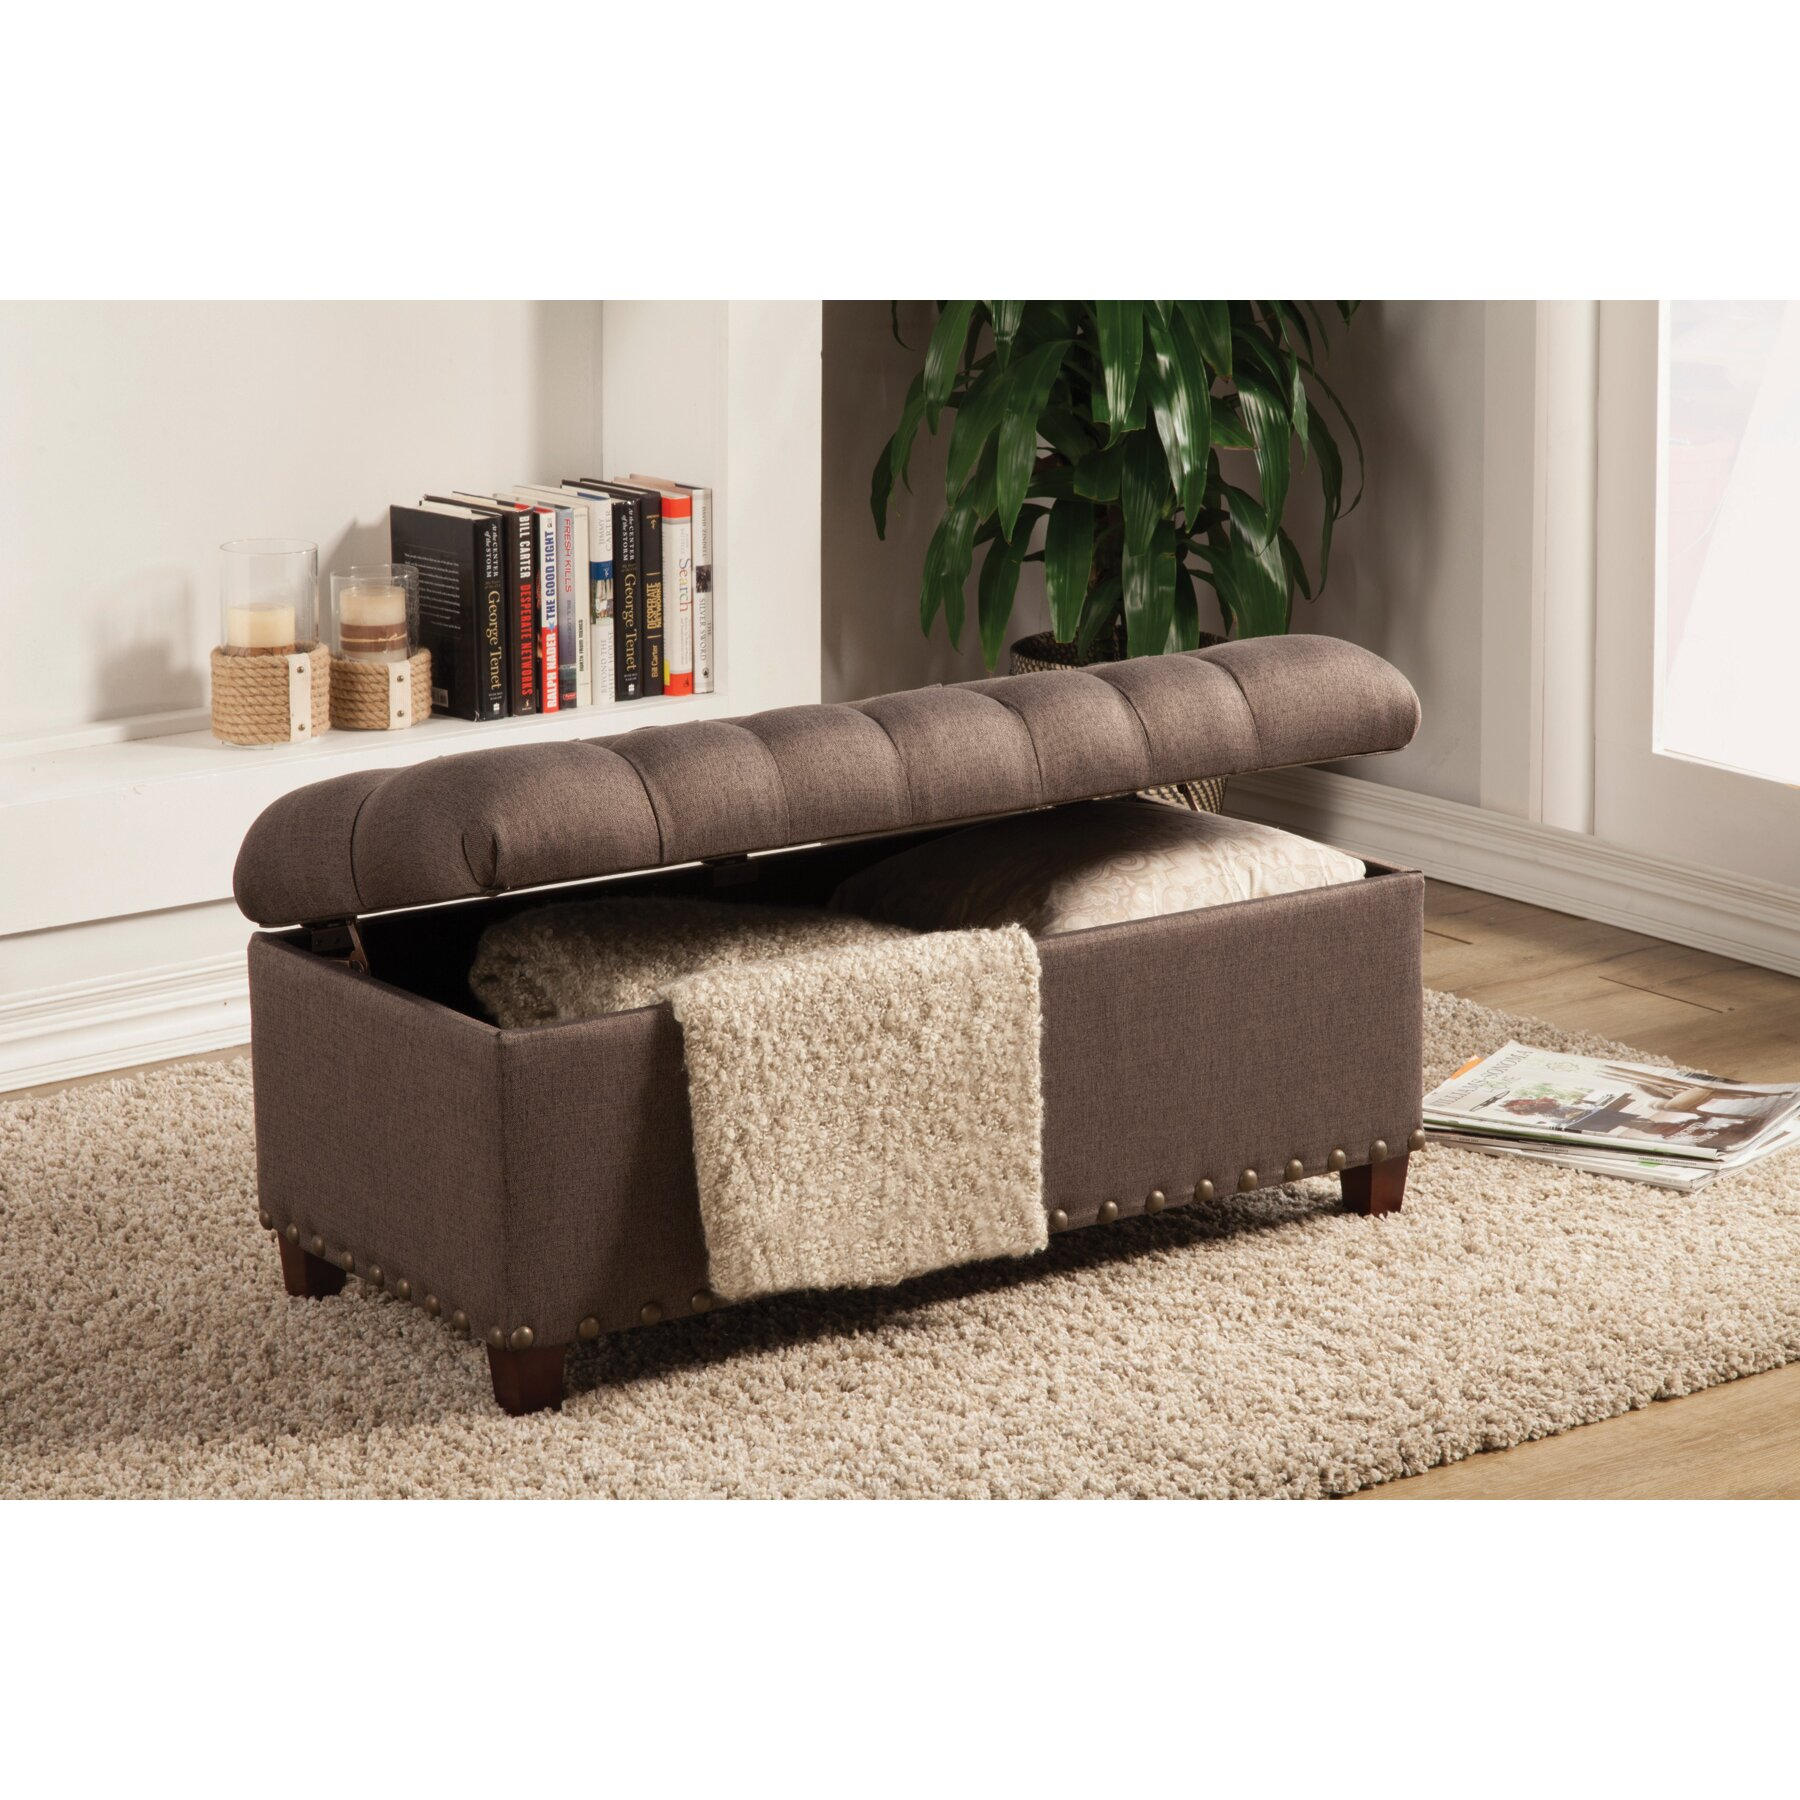 Storage Benches For Bedrooms: Alcott Hill Henderson Upholstered Storage Bedroom Bench